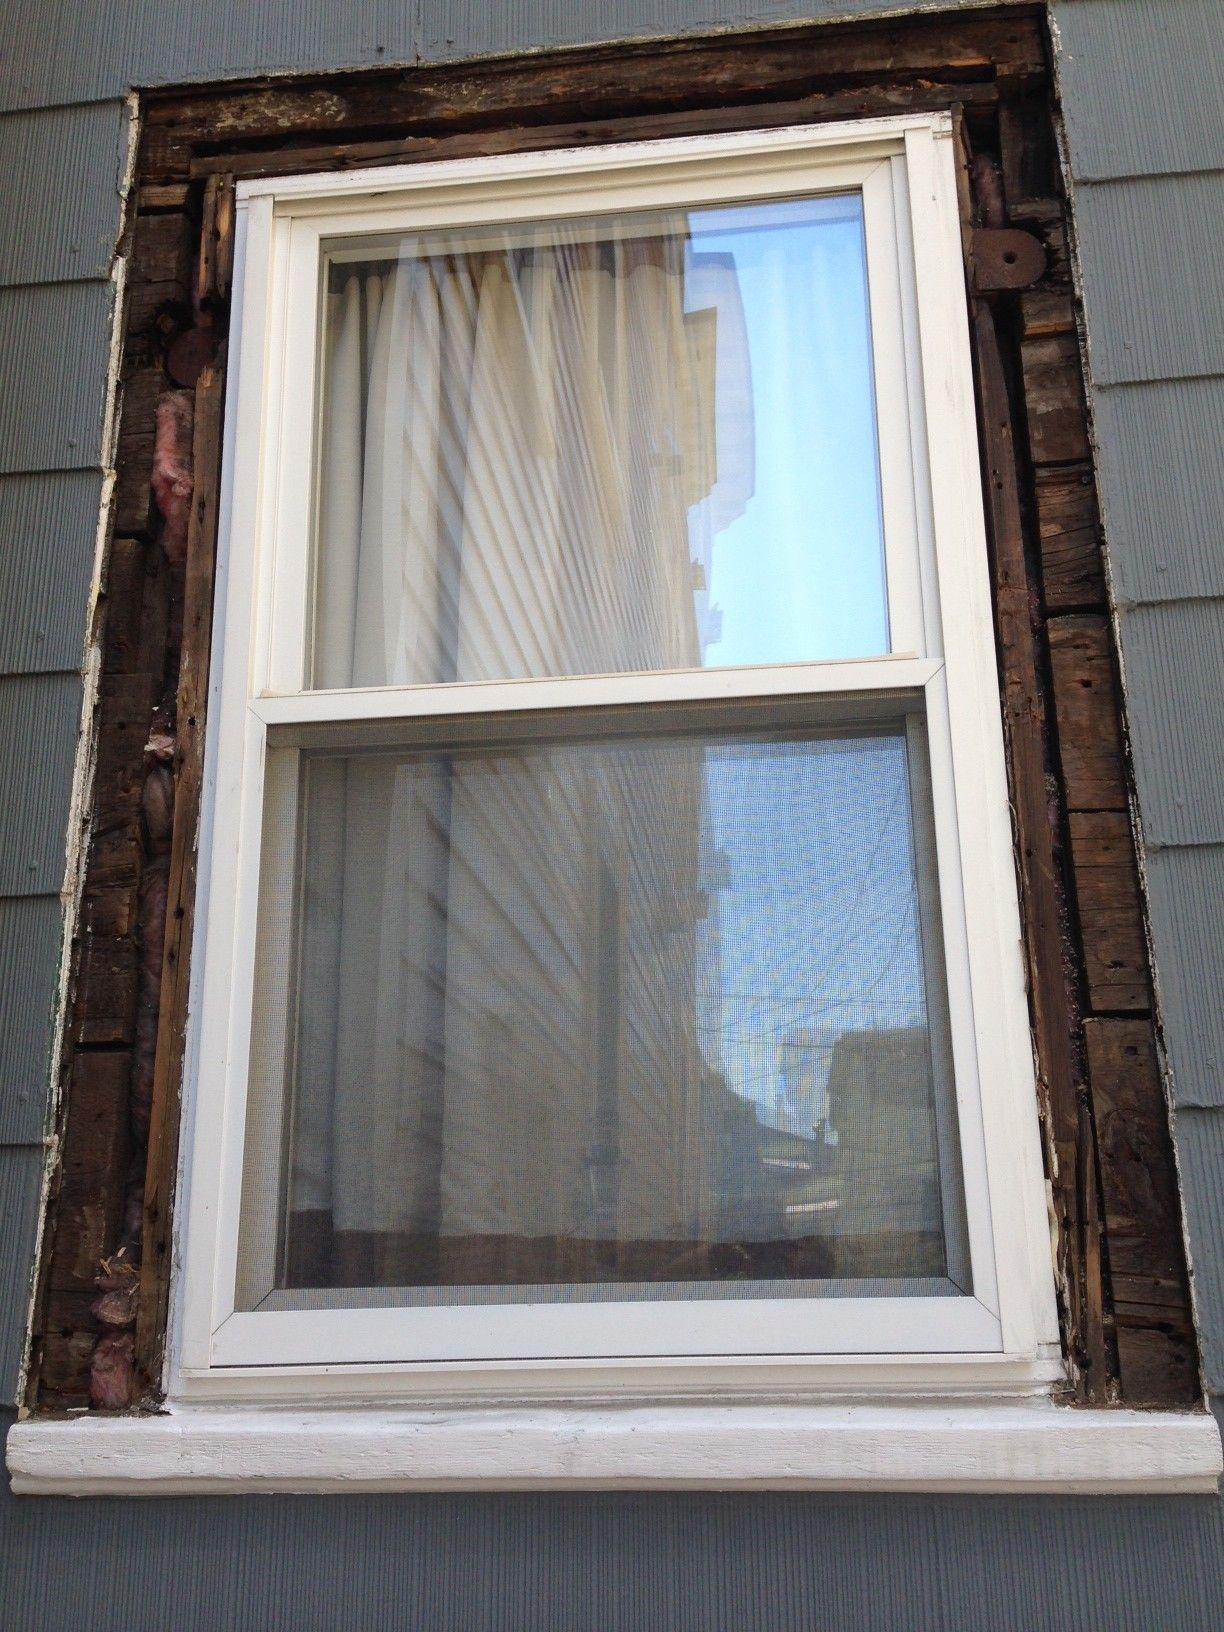 How to replace exterior window trim house to do - Wood filler or caulk for exterior trim ...